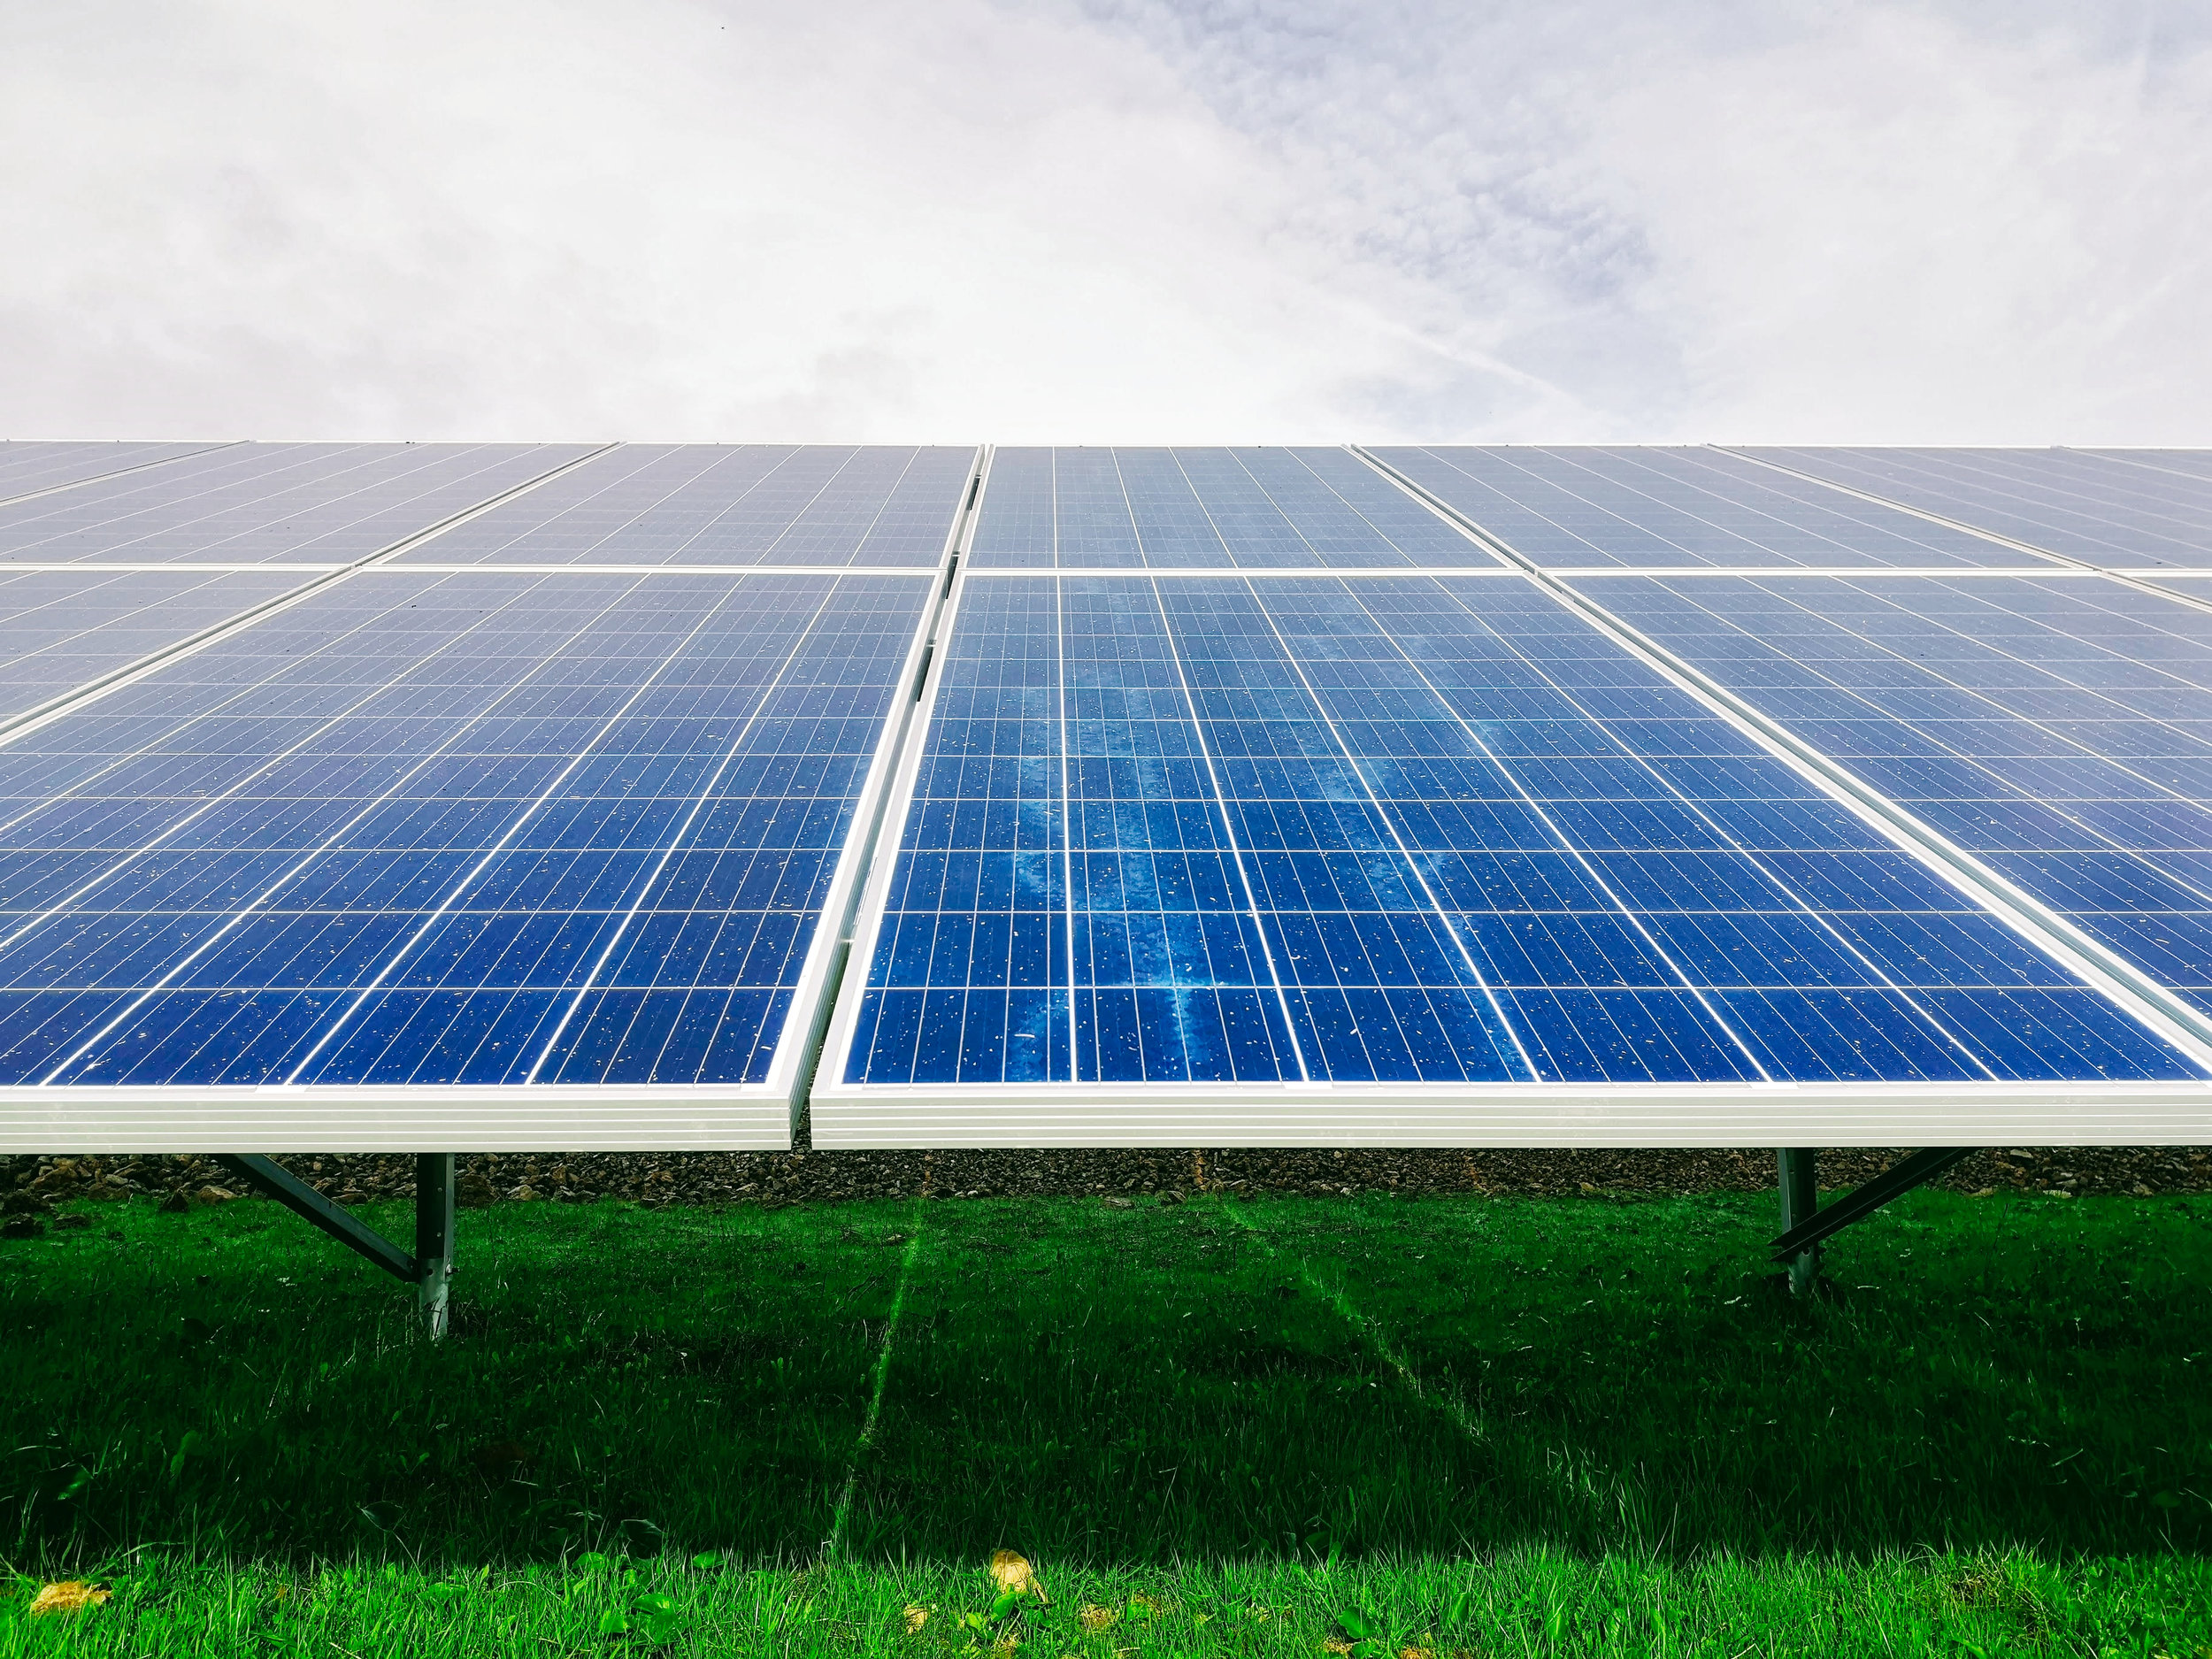 Conventional silicon based solar panels - Image Credit:  Mariana Proença via Unsplash  -  HDR tune by Universal-Sci